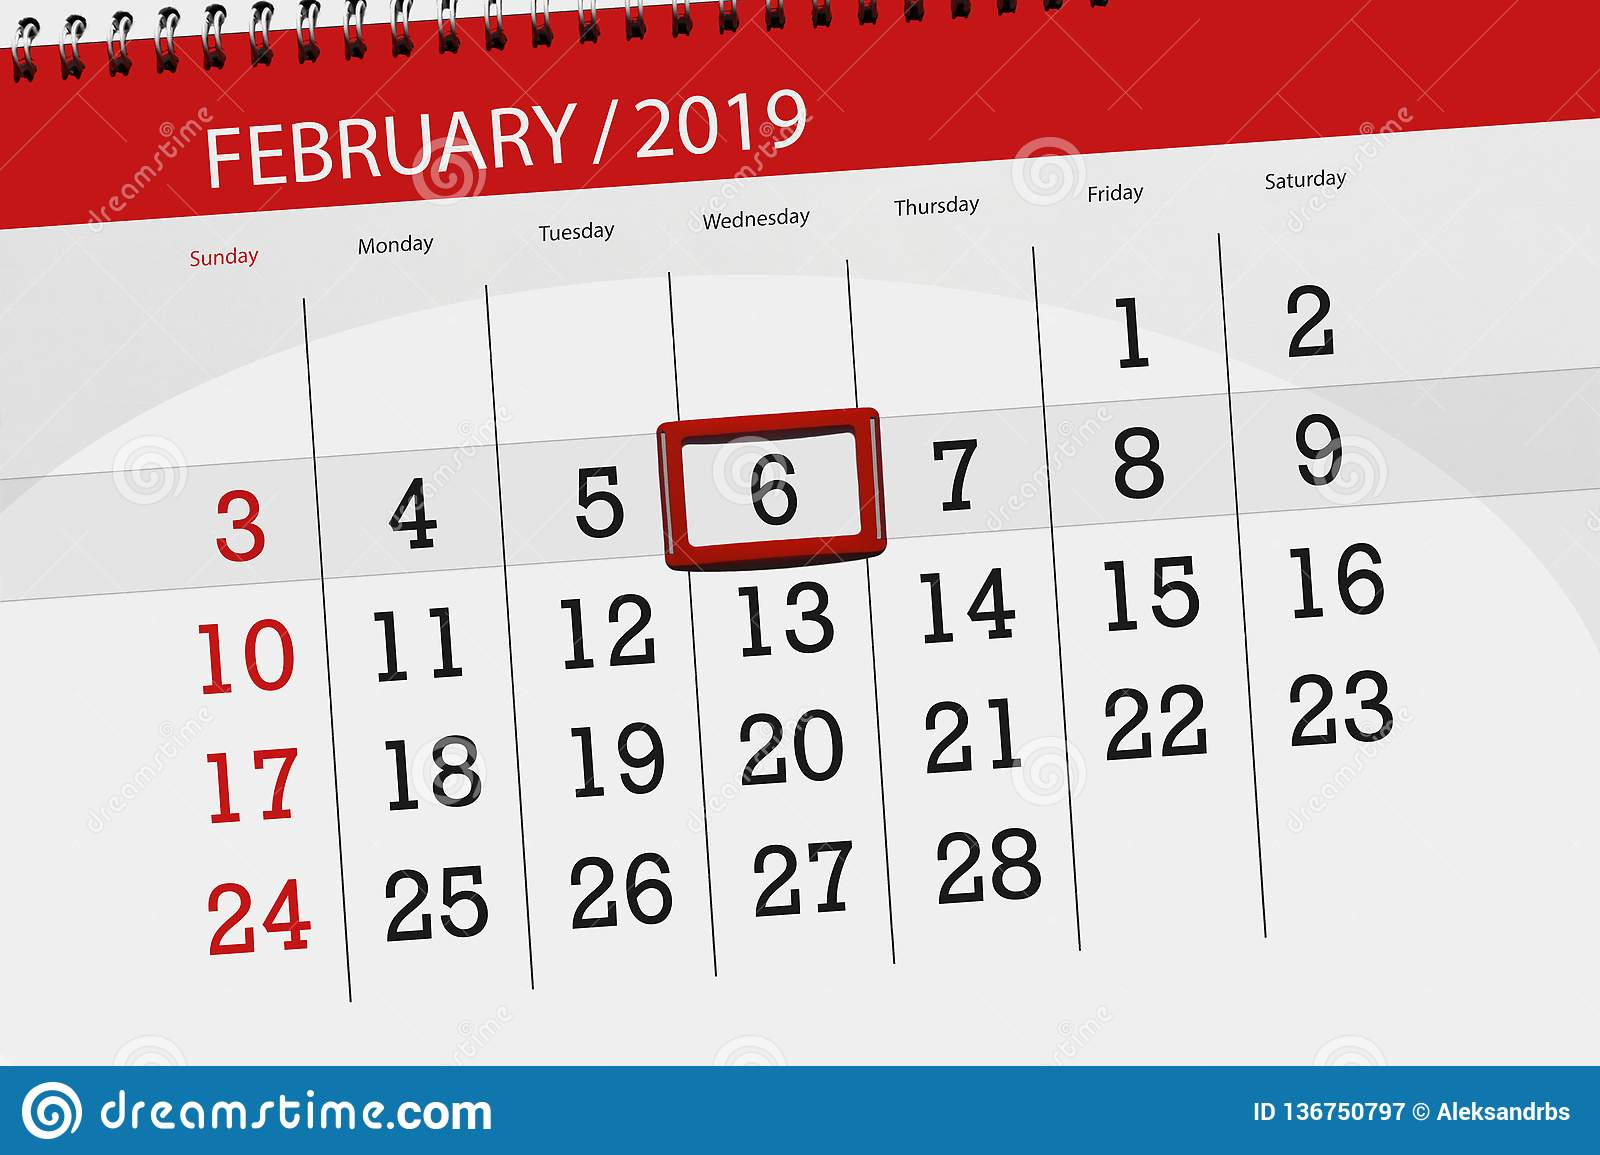 Wednesday 6 February 2019 Calendar Planner For The Month February 2019 Deadline Day 6